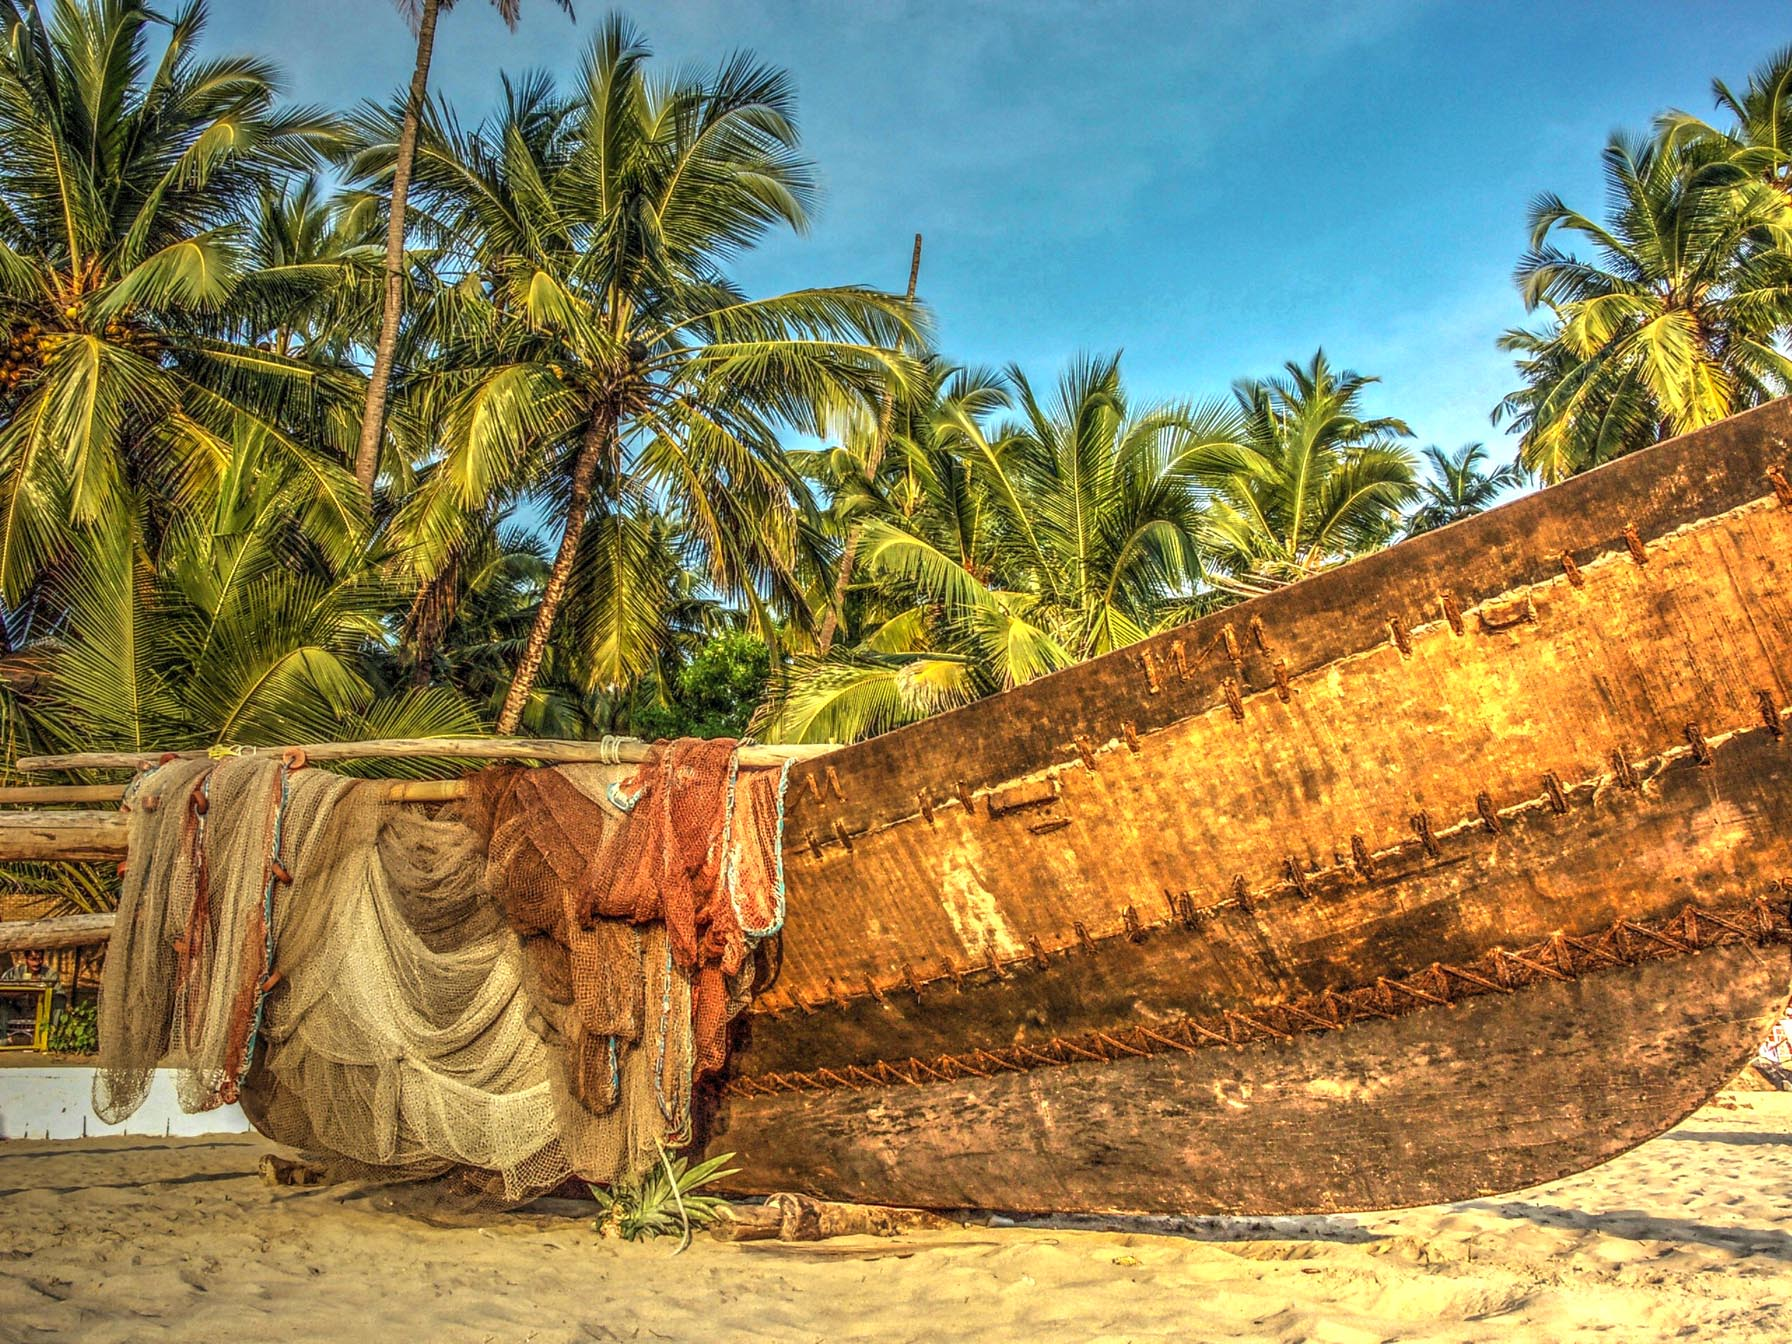 Fishing boat, Palolem beach, Goa